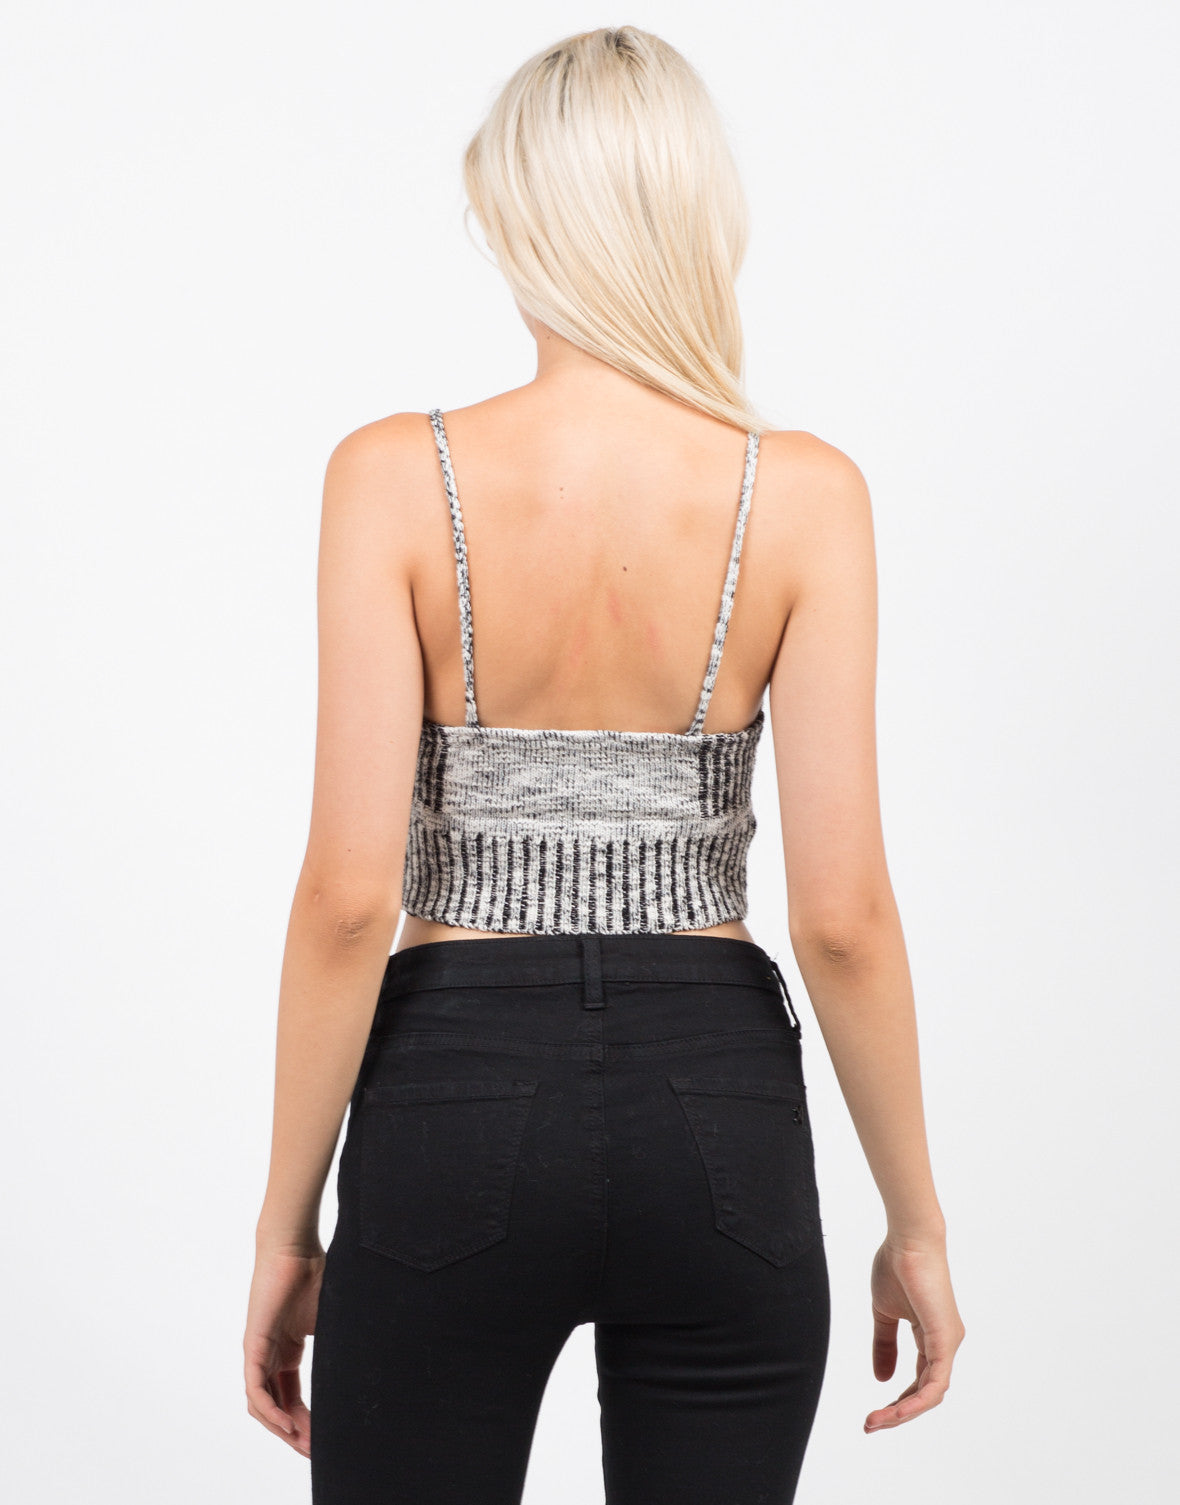 Back View of Mixed Knit Crop Top